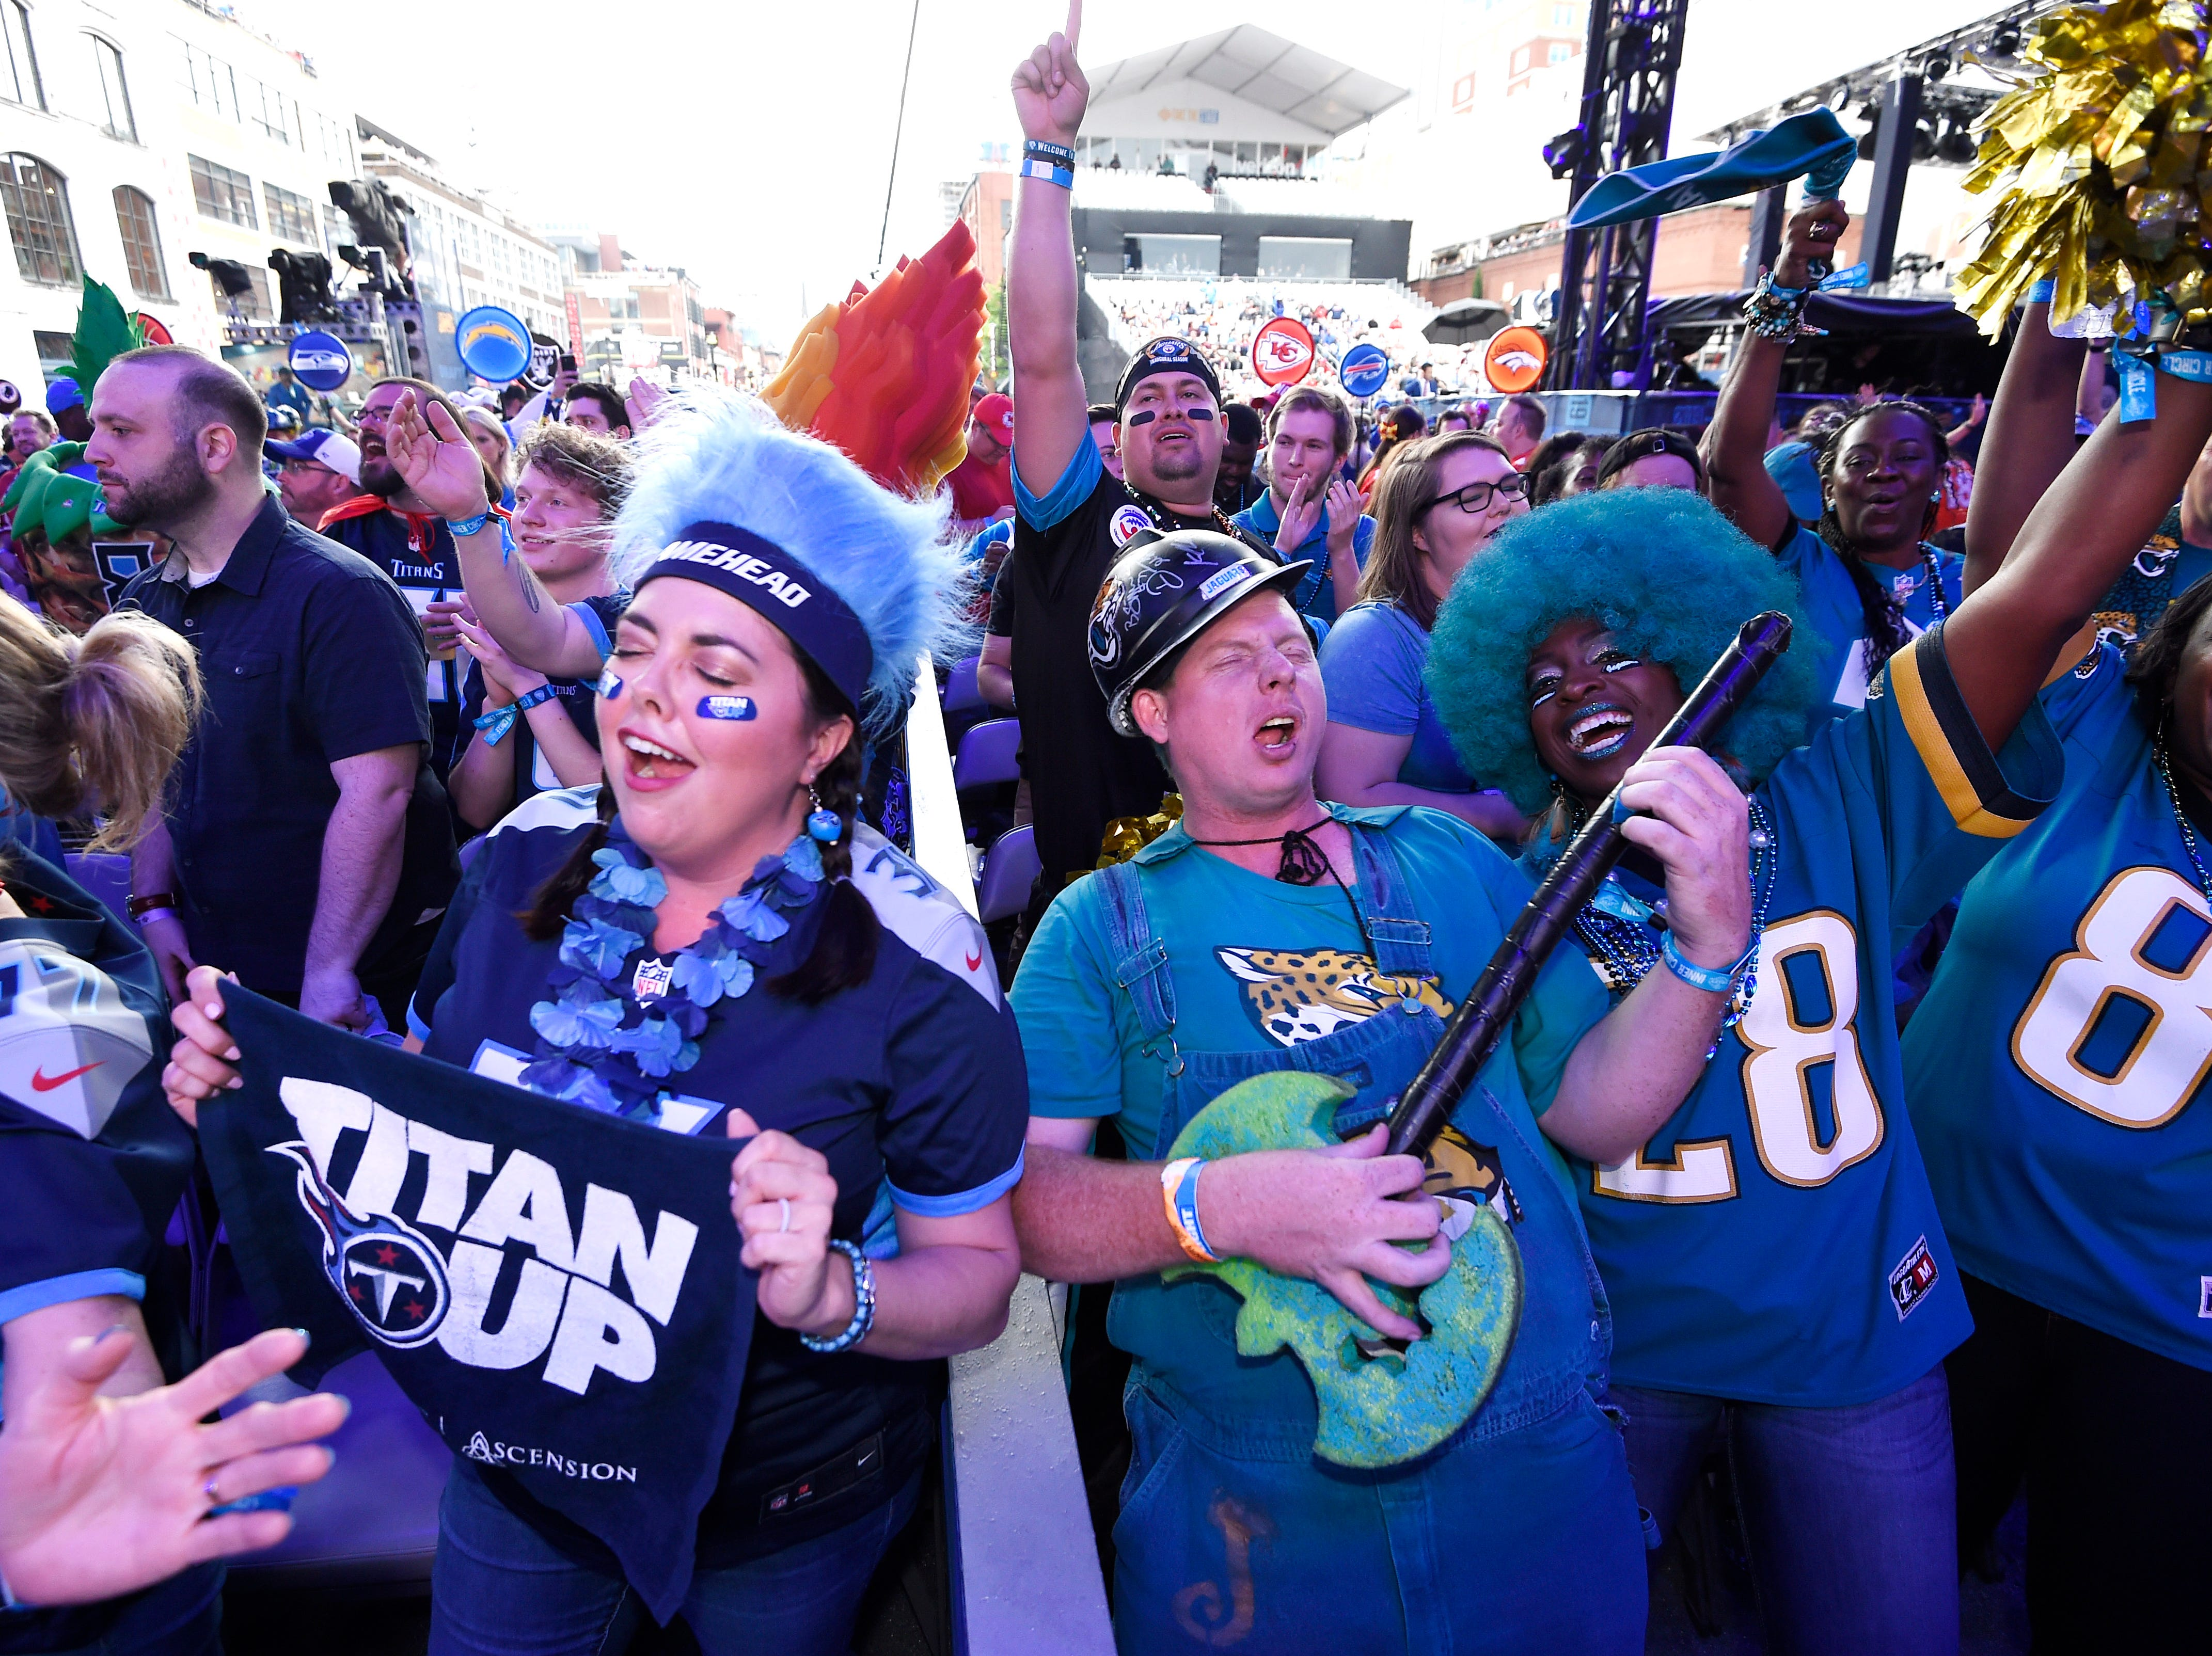 Titans fans dance next to Jaguars fans as Moon Taxi performs before the first round of the NFL Draft Thursday, April 25, 2019, in Nashville, Tenn.